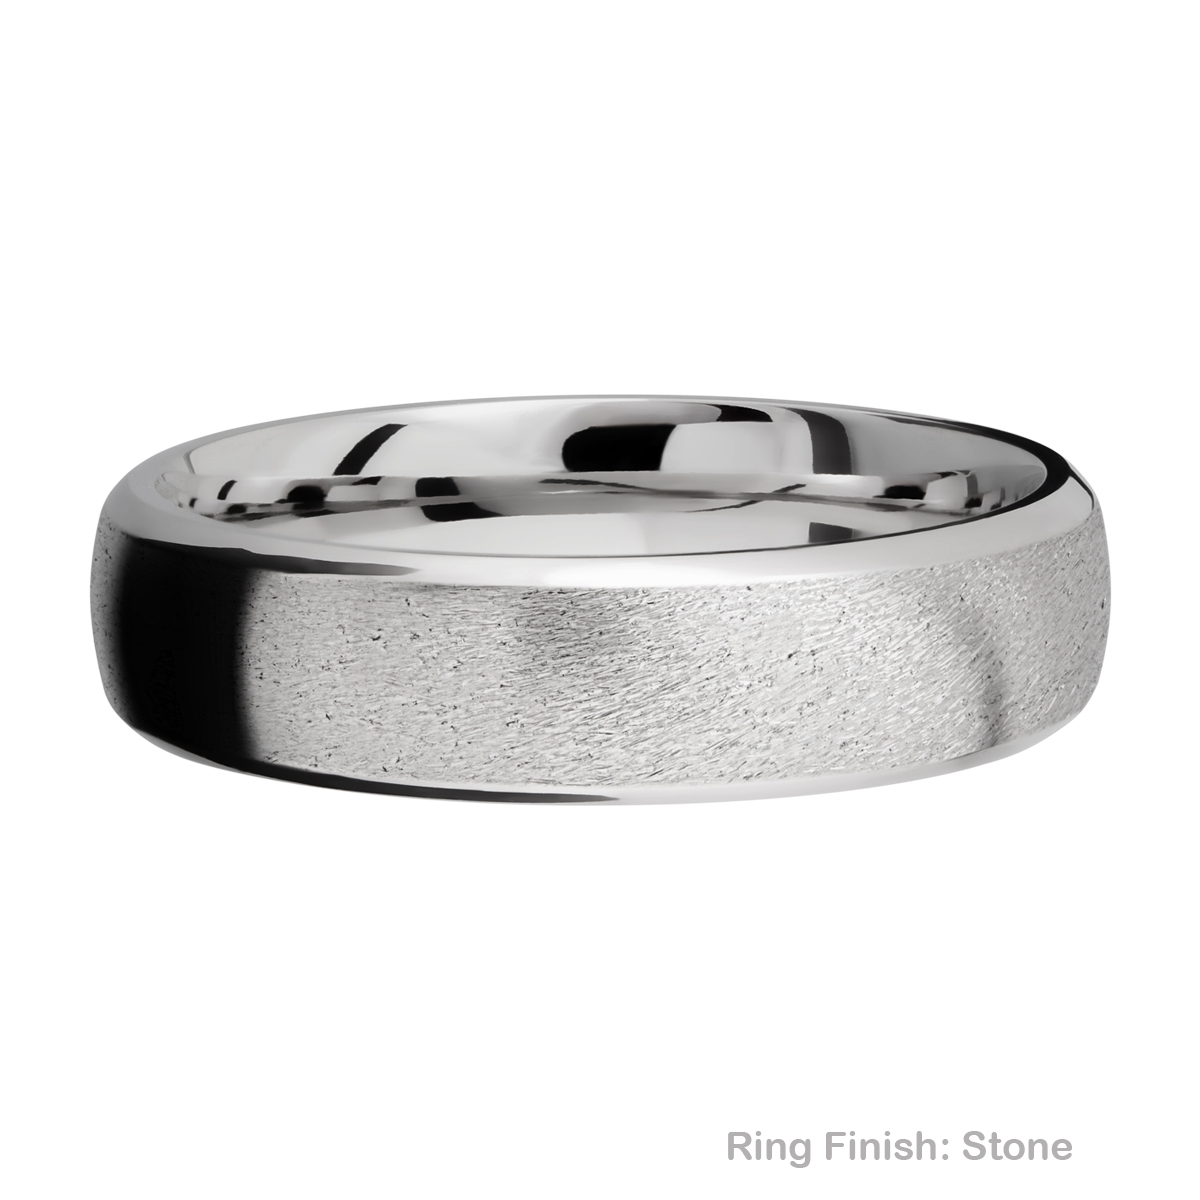 Lashbrook 6DB Titanium Wedding Ring or Band Alternative View 6